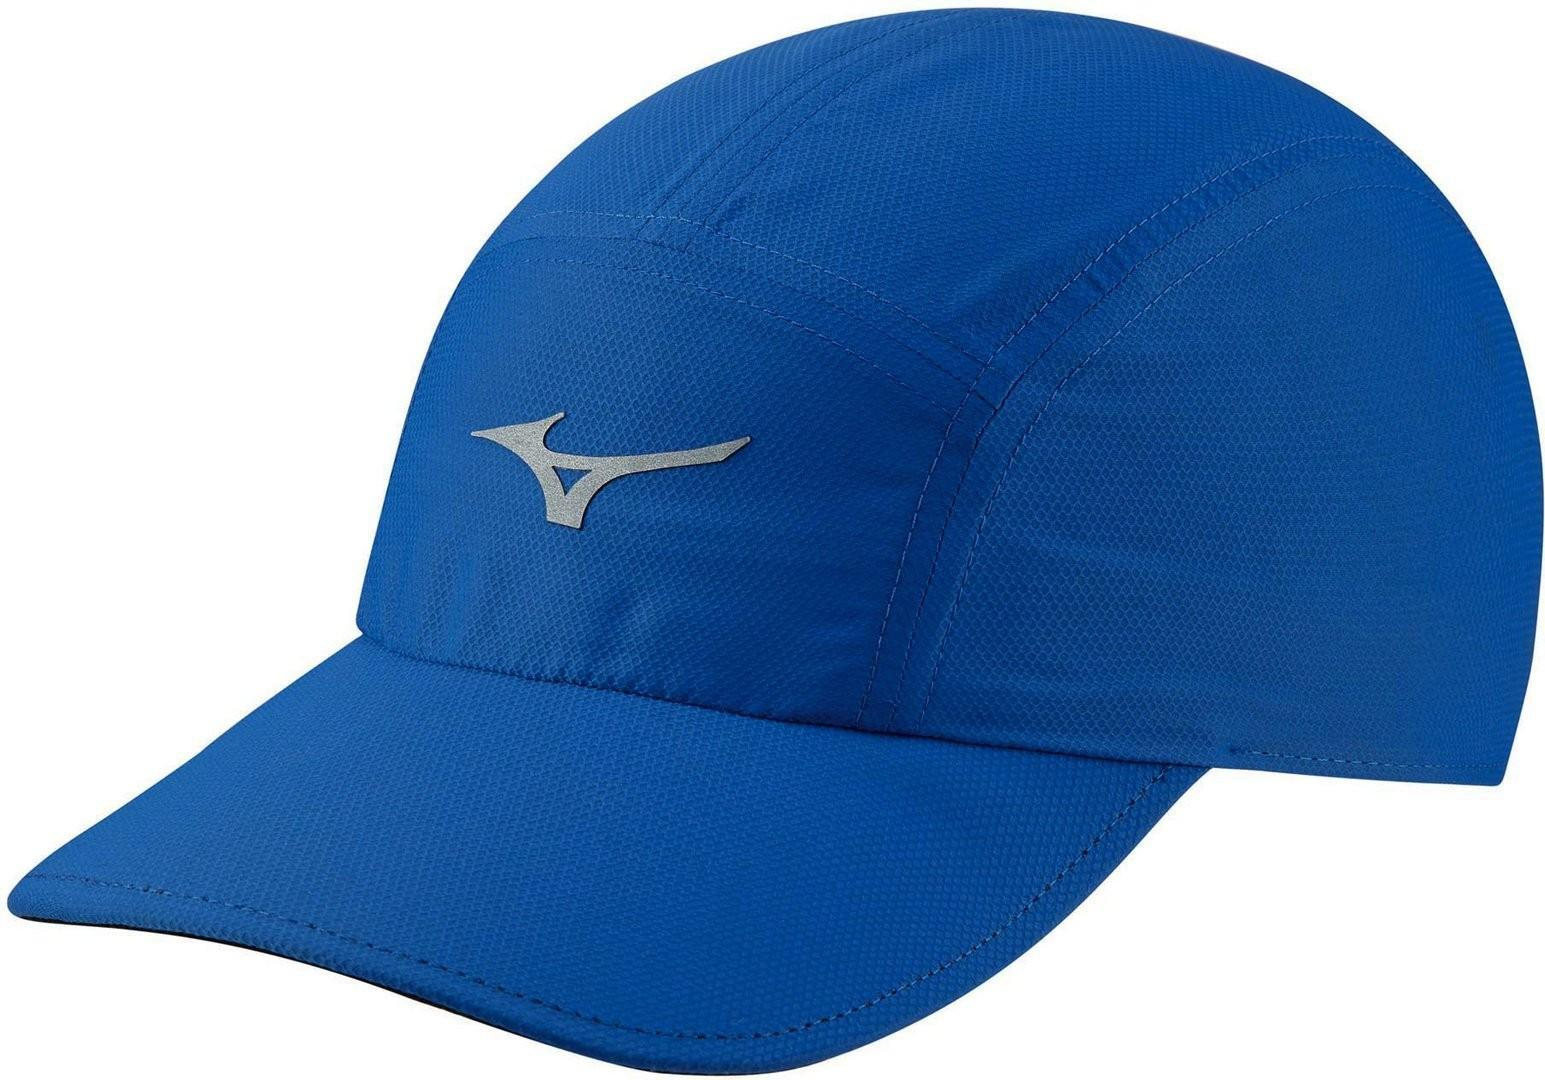 Теннисная кепка Mizuno Drylite Cap nautical blue